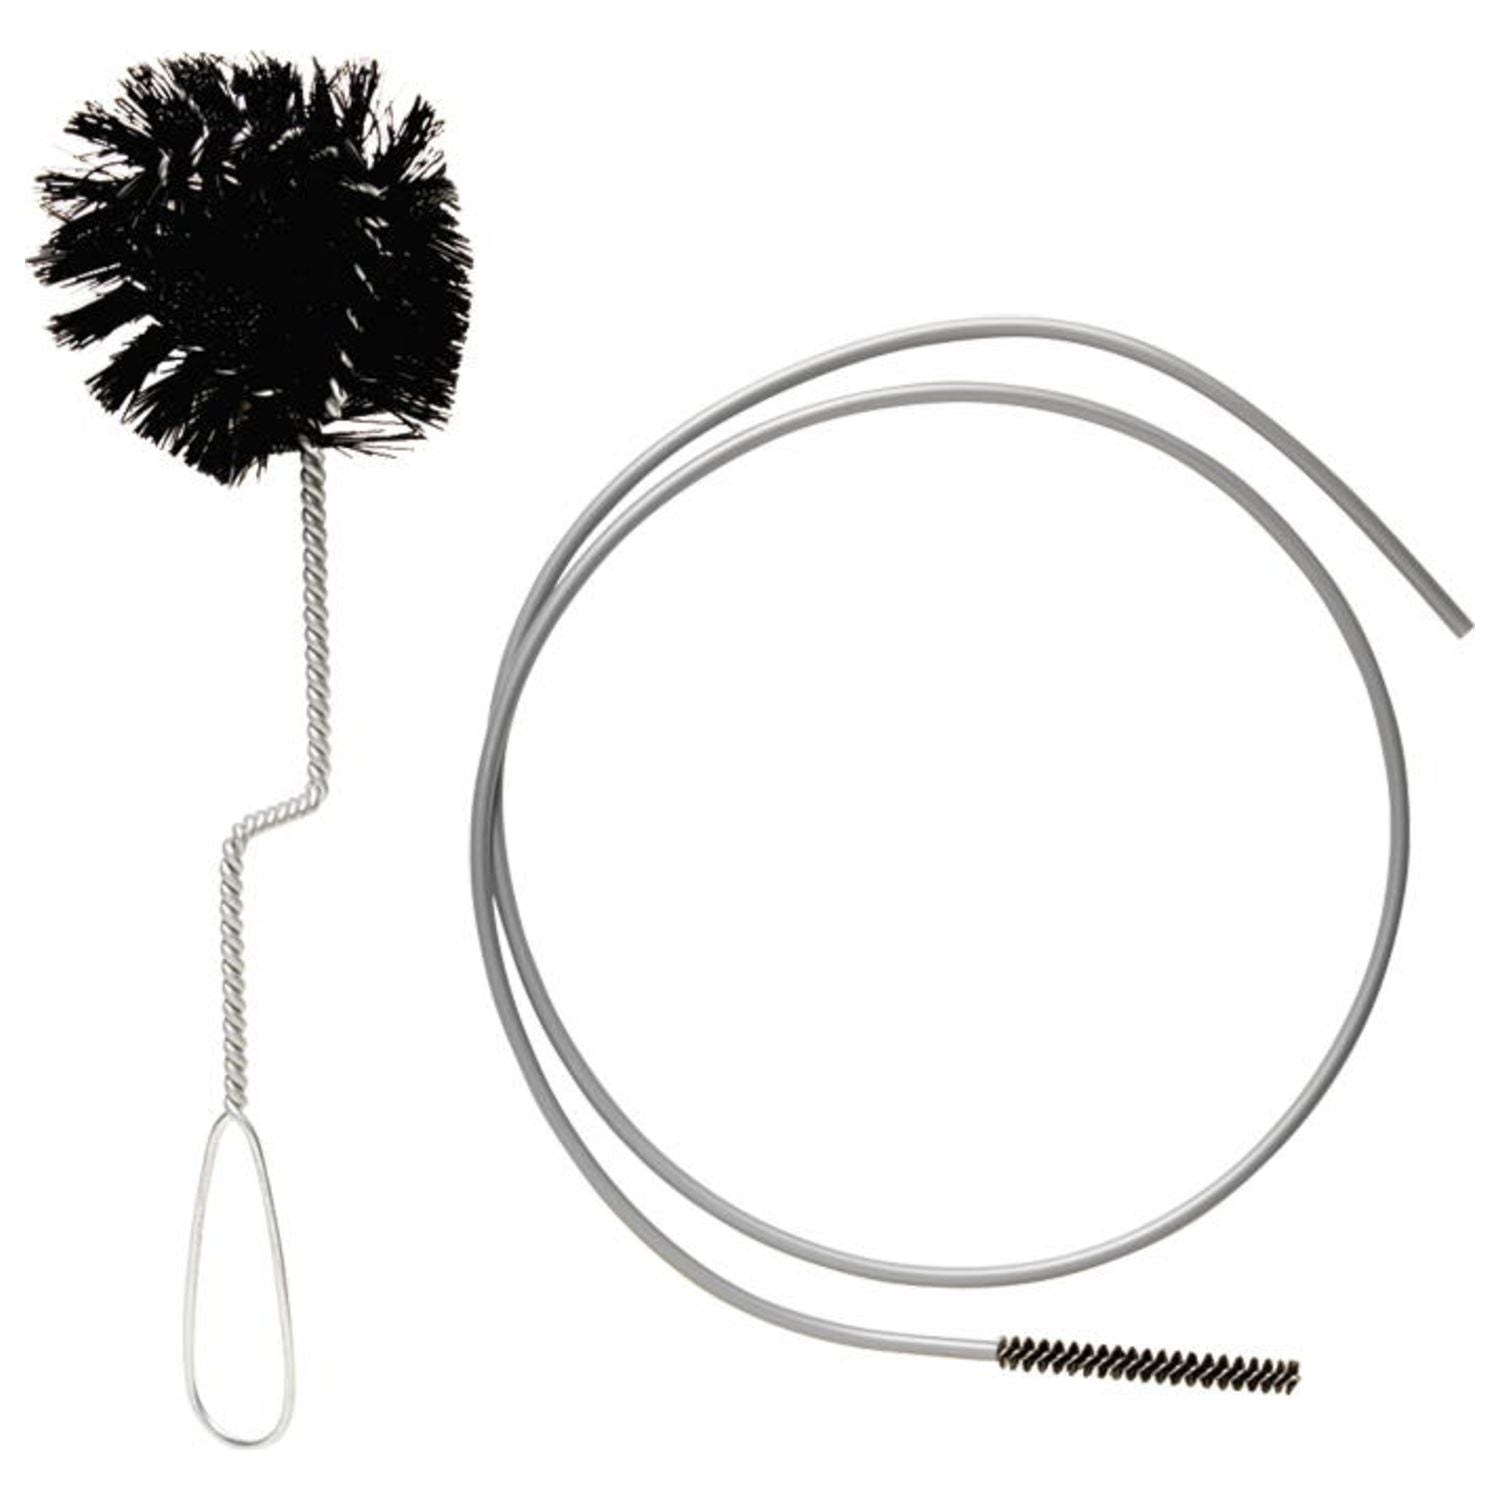 Crux Reservoir Cleaning Brush Kit - Chillout